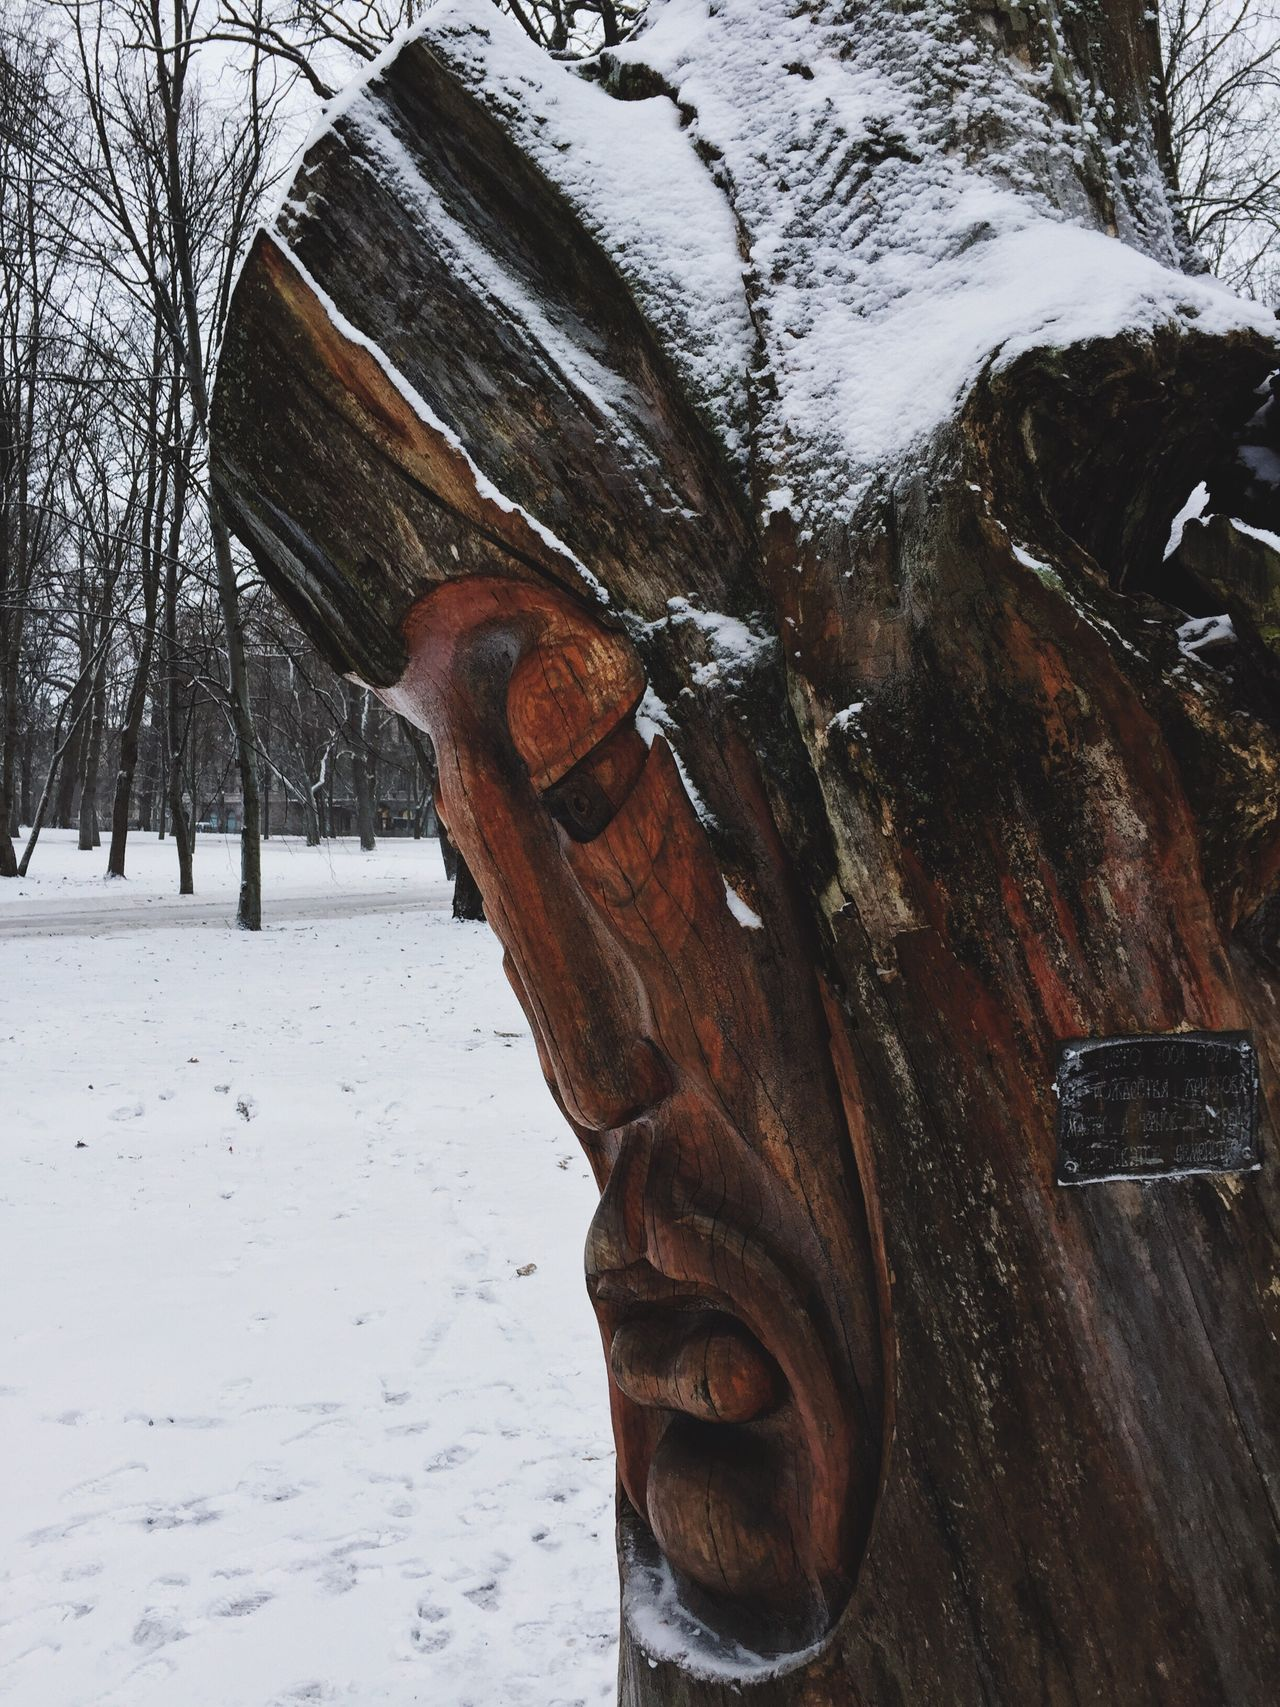 Snow Winter Cold Temperature Weather Tree Tree Trunk Nature Outdoors Day Wood - Material No People Close-up Beauty In Nature Totem Wood Russia Vyborg